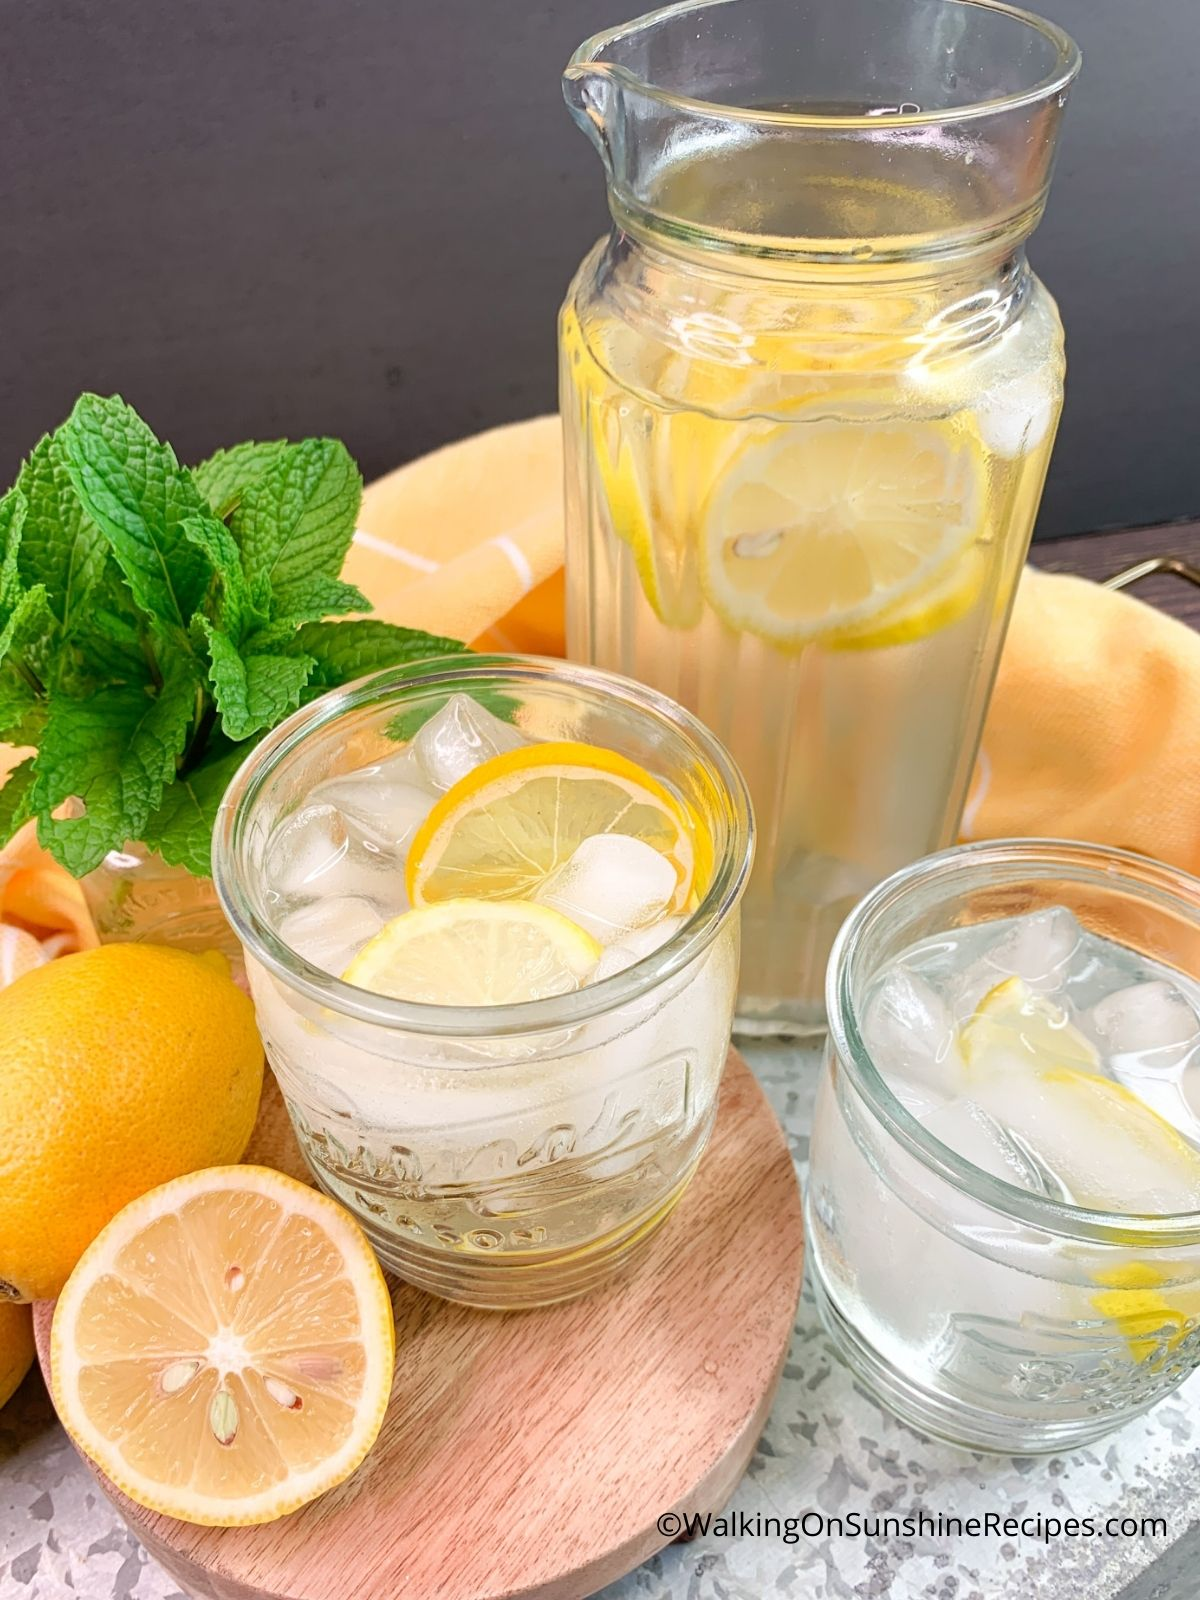 Lemon flavored water in glasses with ice cubes.